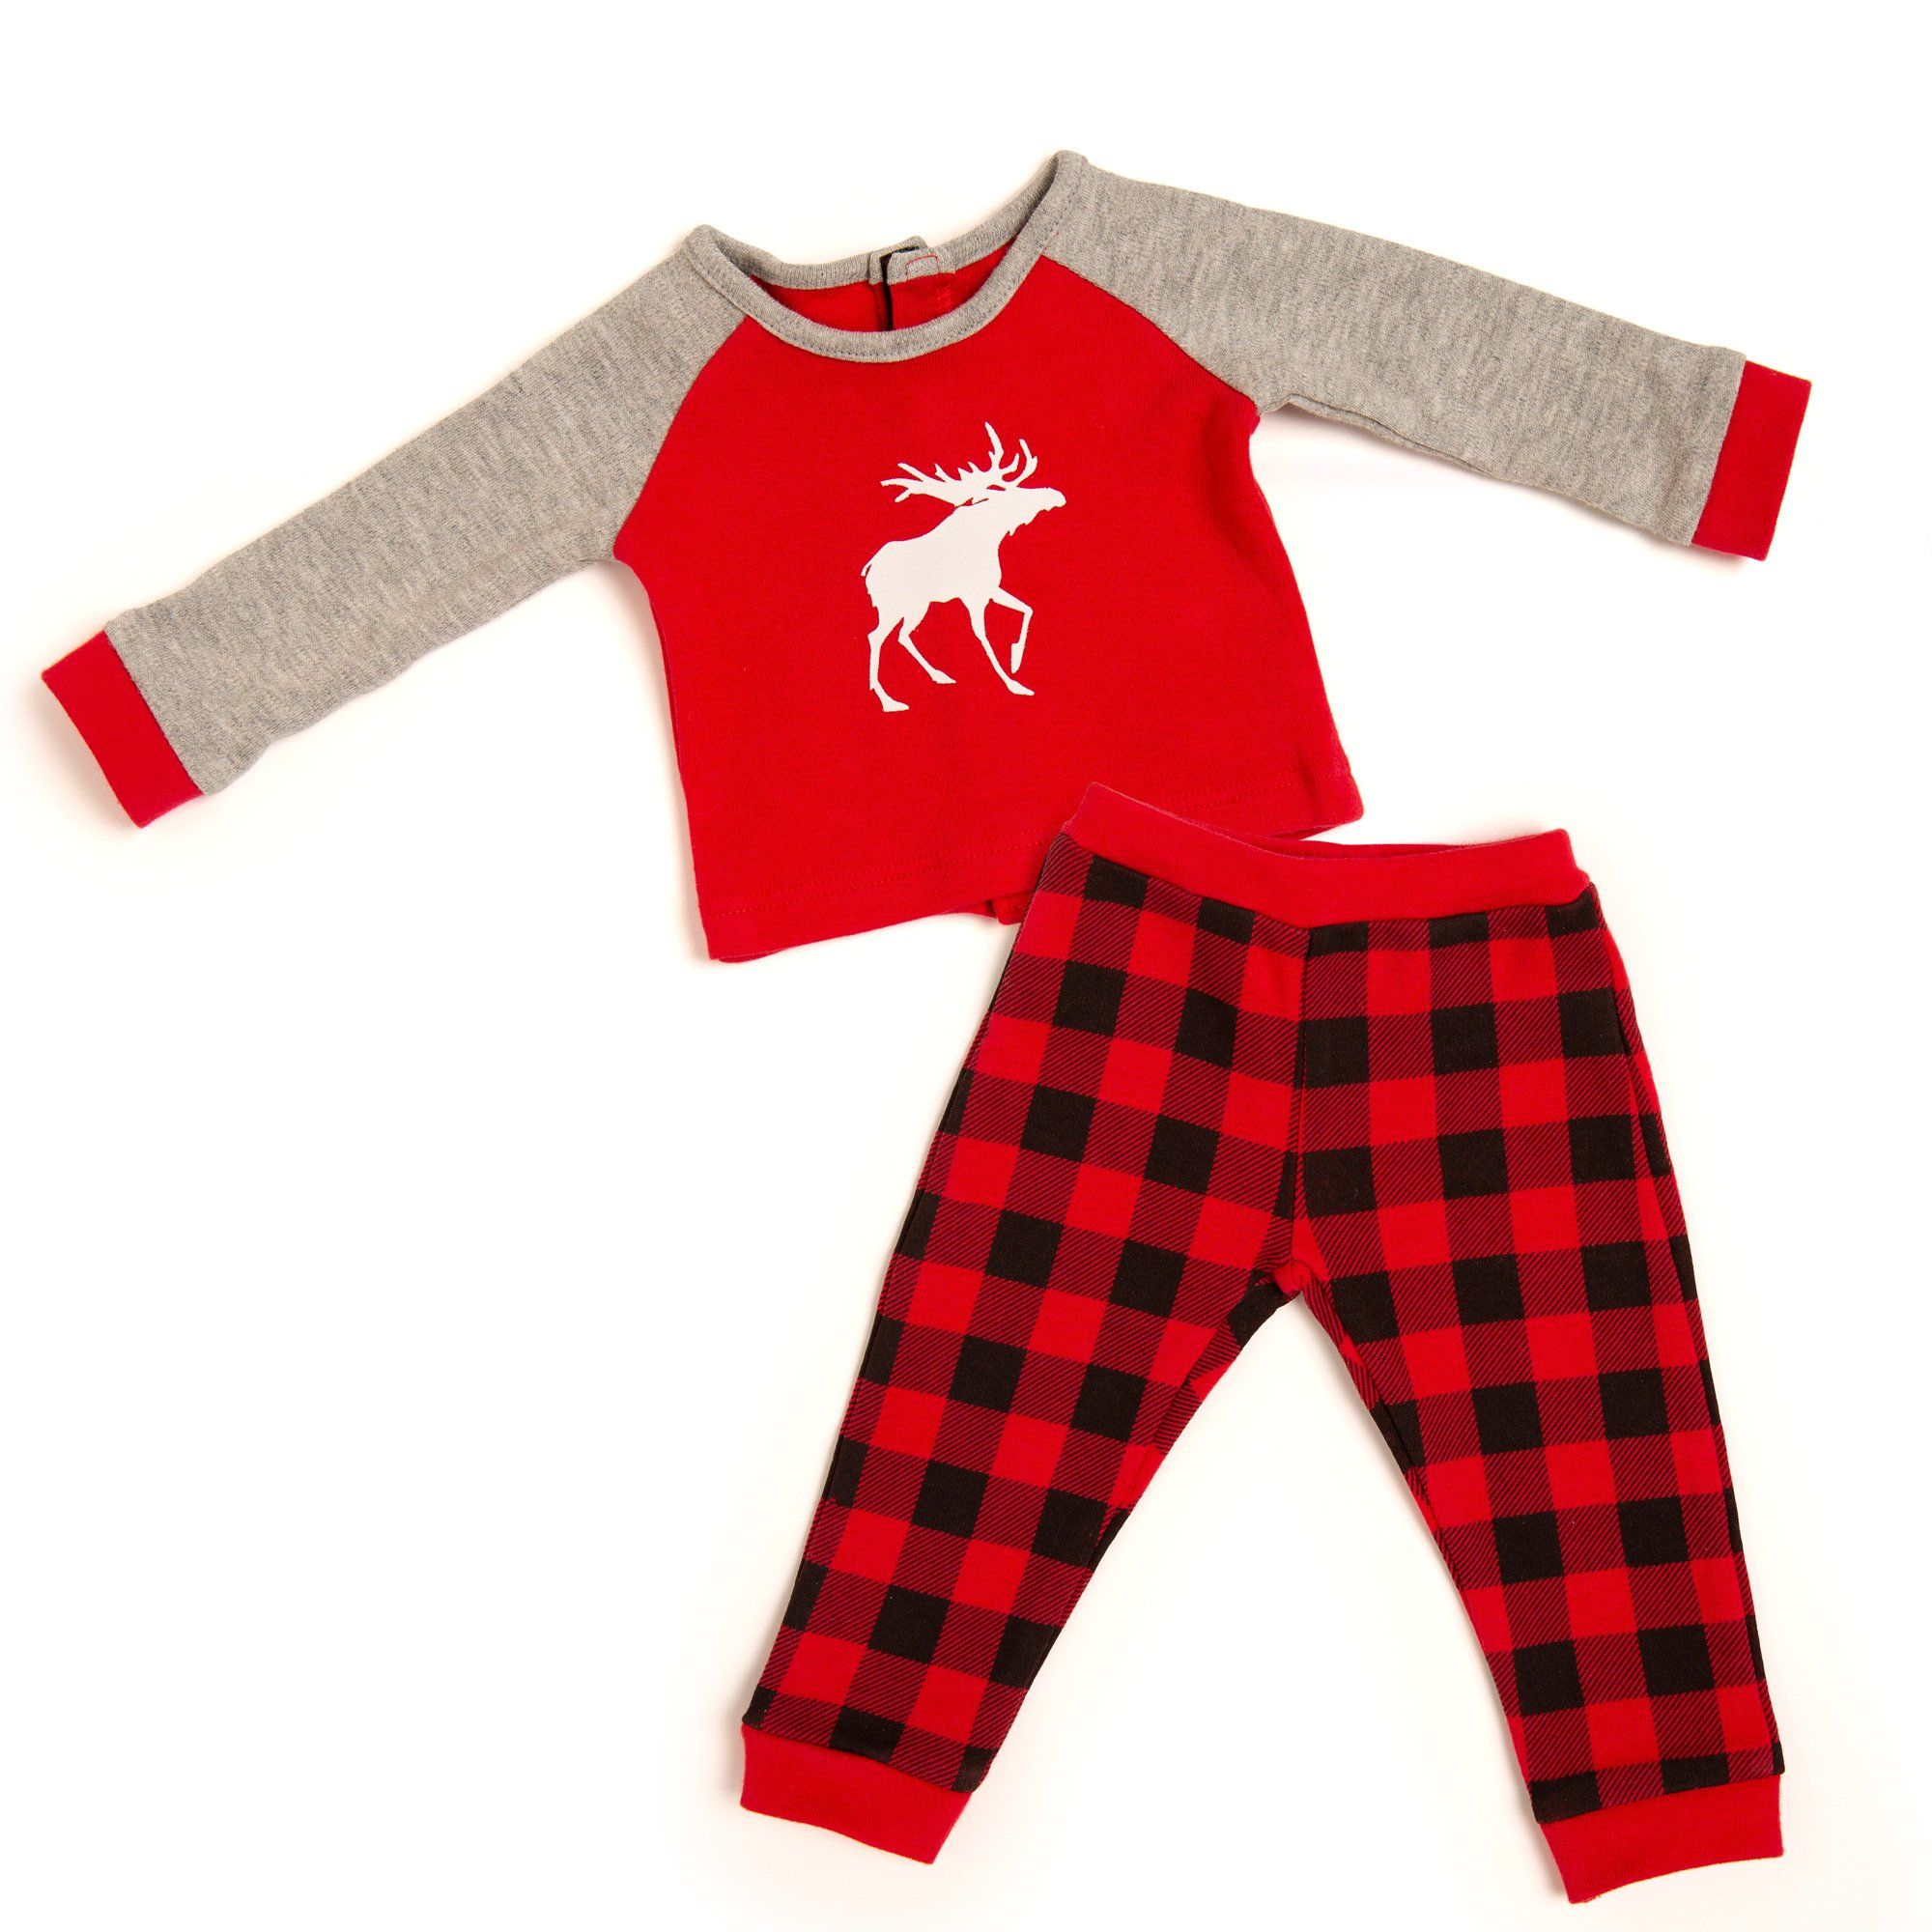 red and black buffalo plaid pjs for 18 inch dolls